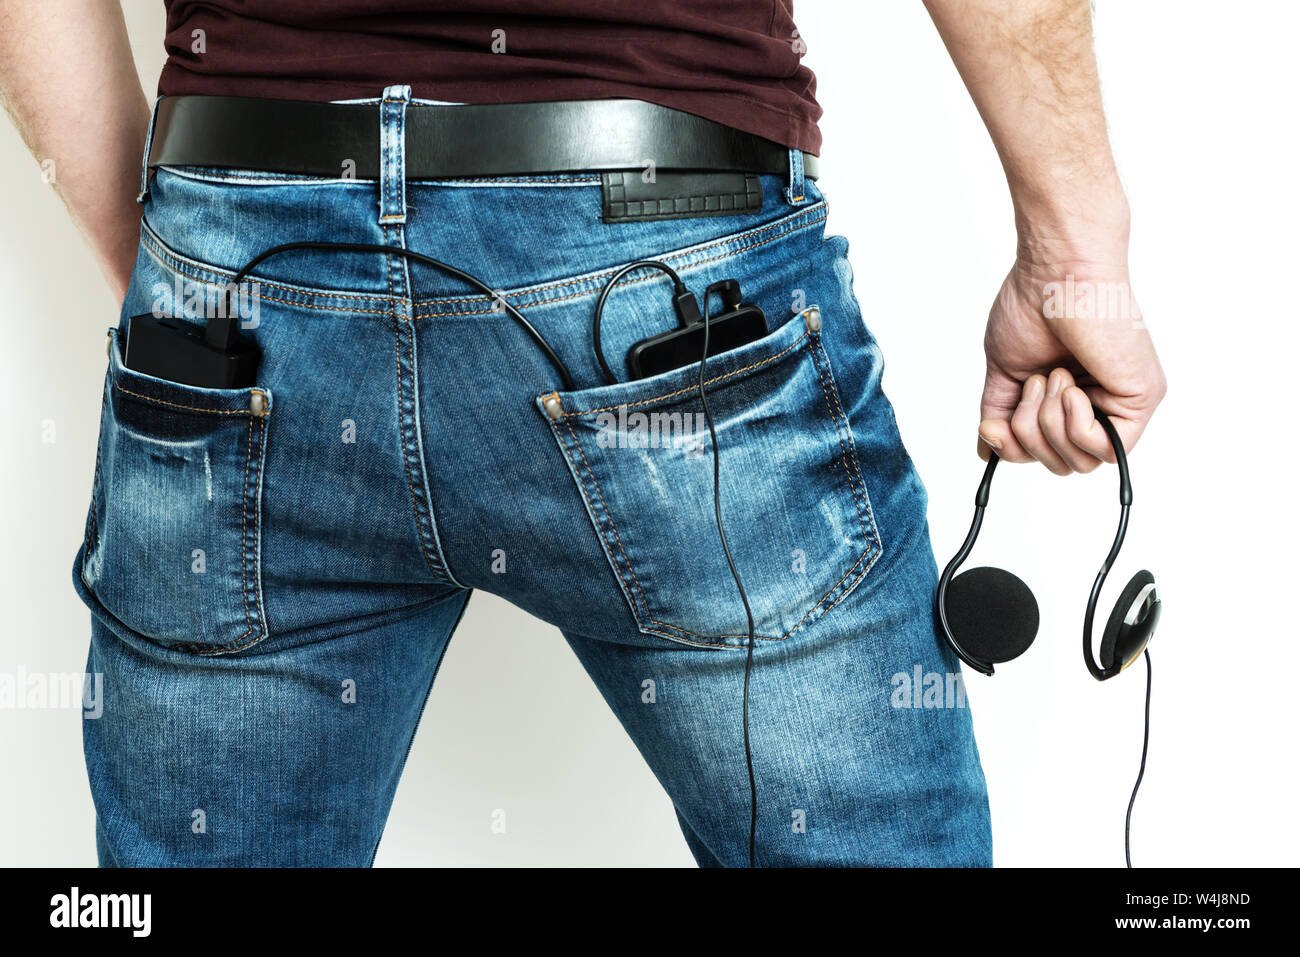 There are a power bank and smartphone in the back pocket of jeans. Stock Photo